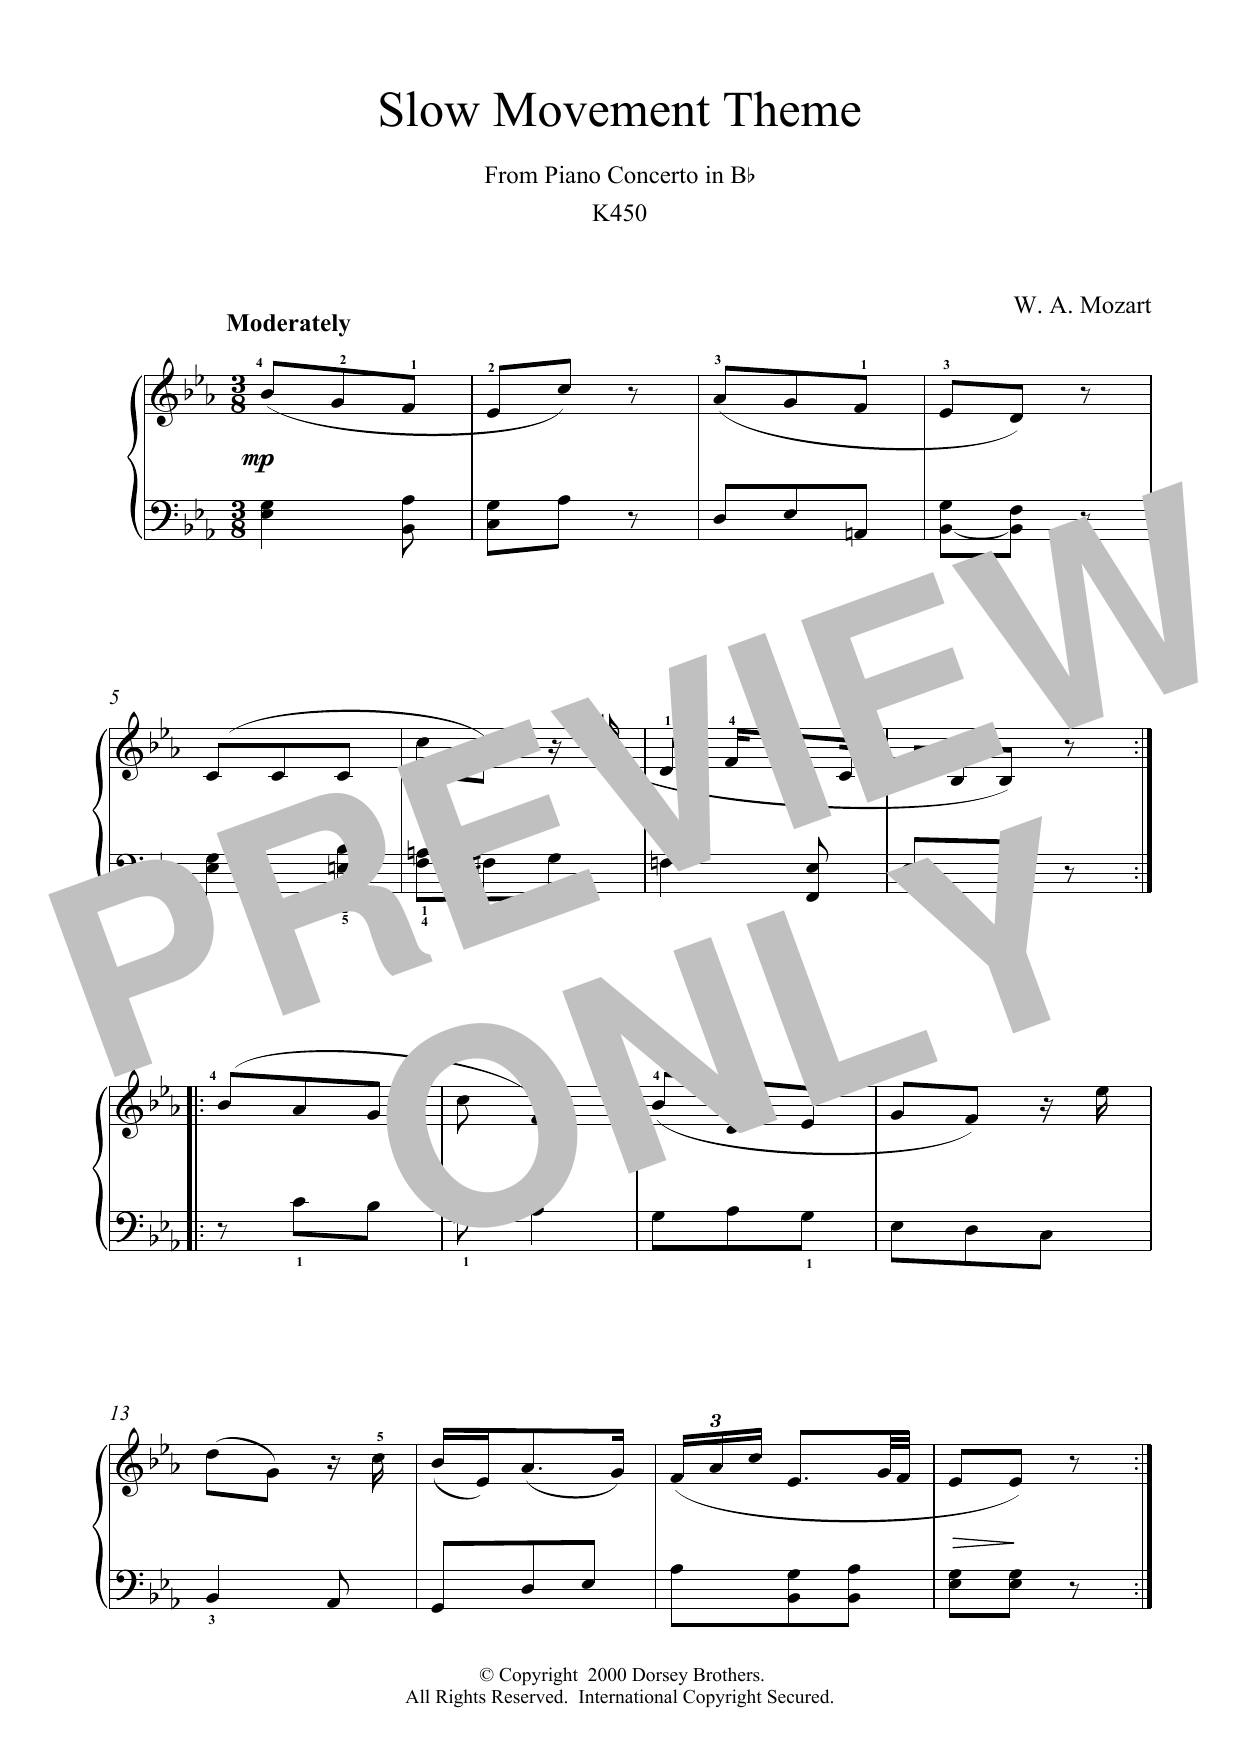 Slow Movement Theme from Piano Concerto in B Flat K450 Sheet Music